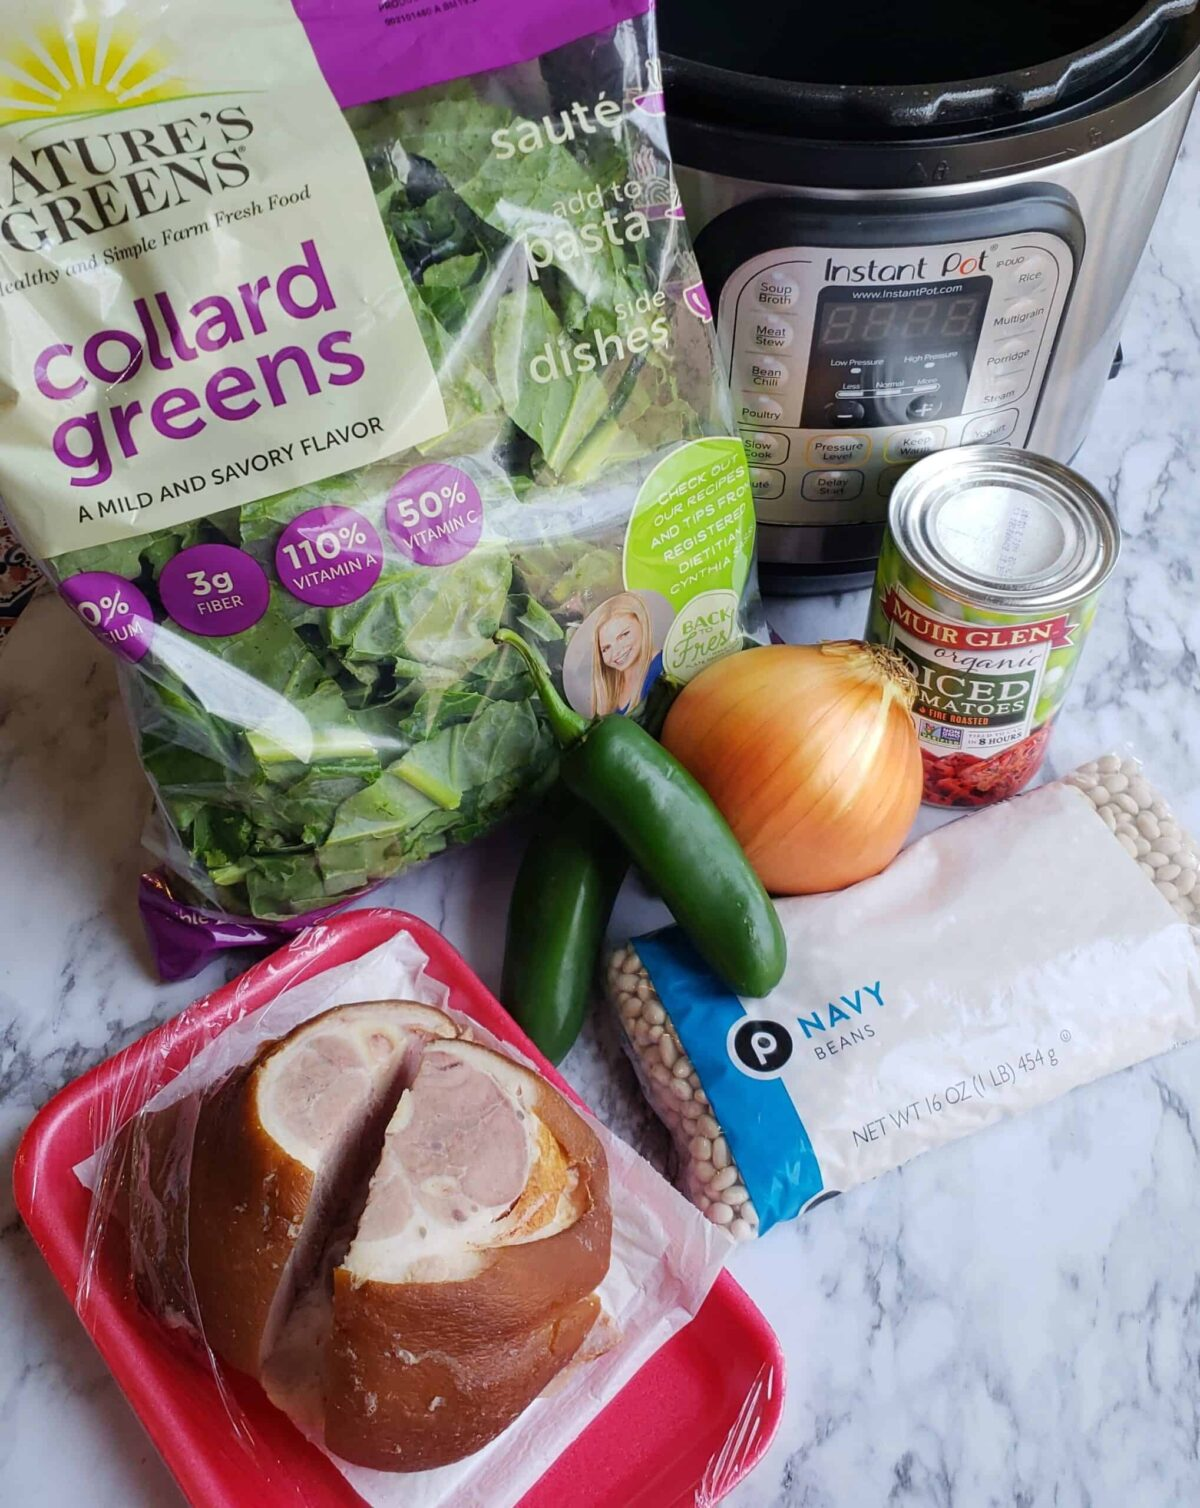 Ingredients for Instant Pot Collard Greens and Beans: Bag of collard greens, can of tomatoes, ham hock, jalapeno peppers, onion, dried Navy beans